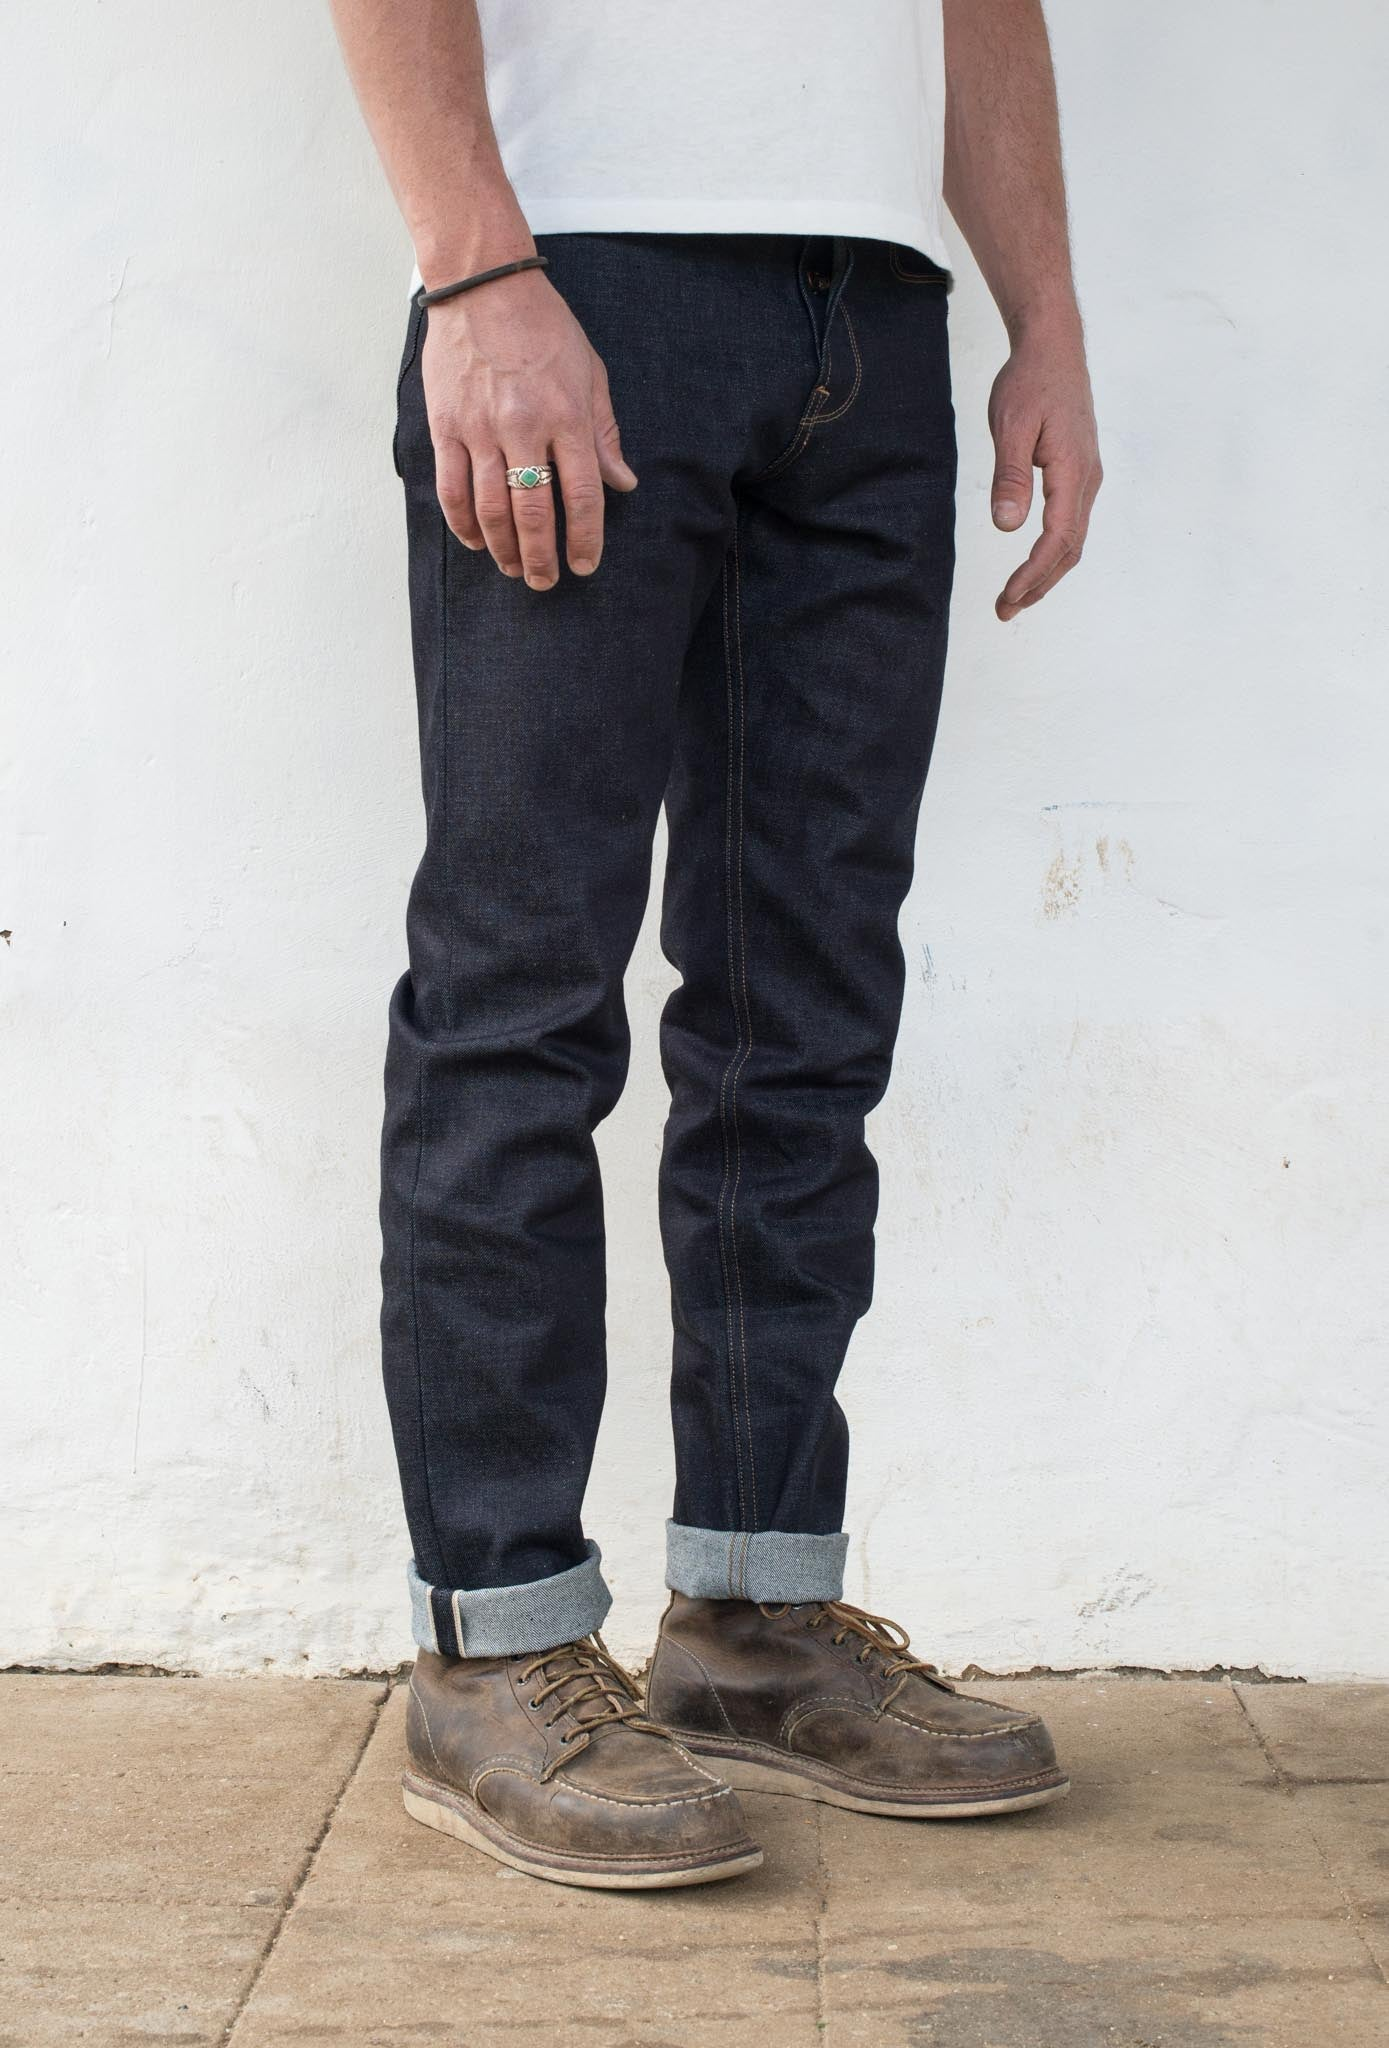 Portola Taper - 14.50 oz Kaihara Denim On Model 3/4 Side